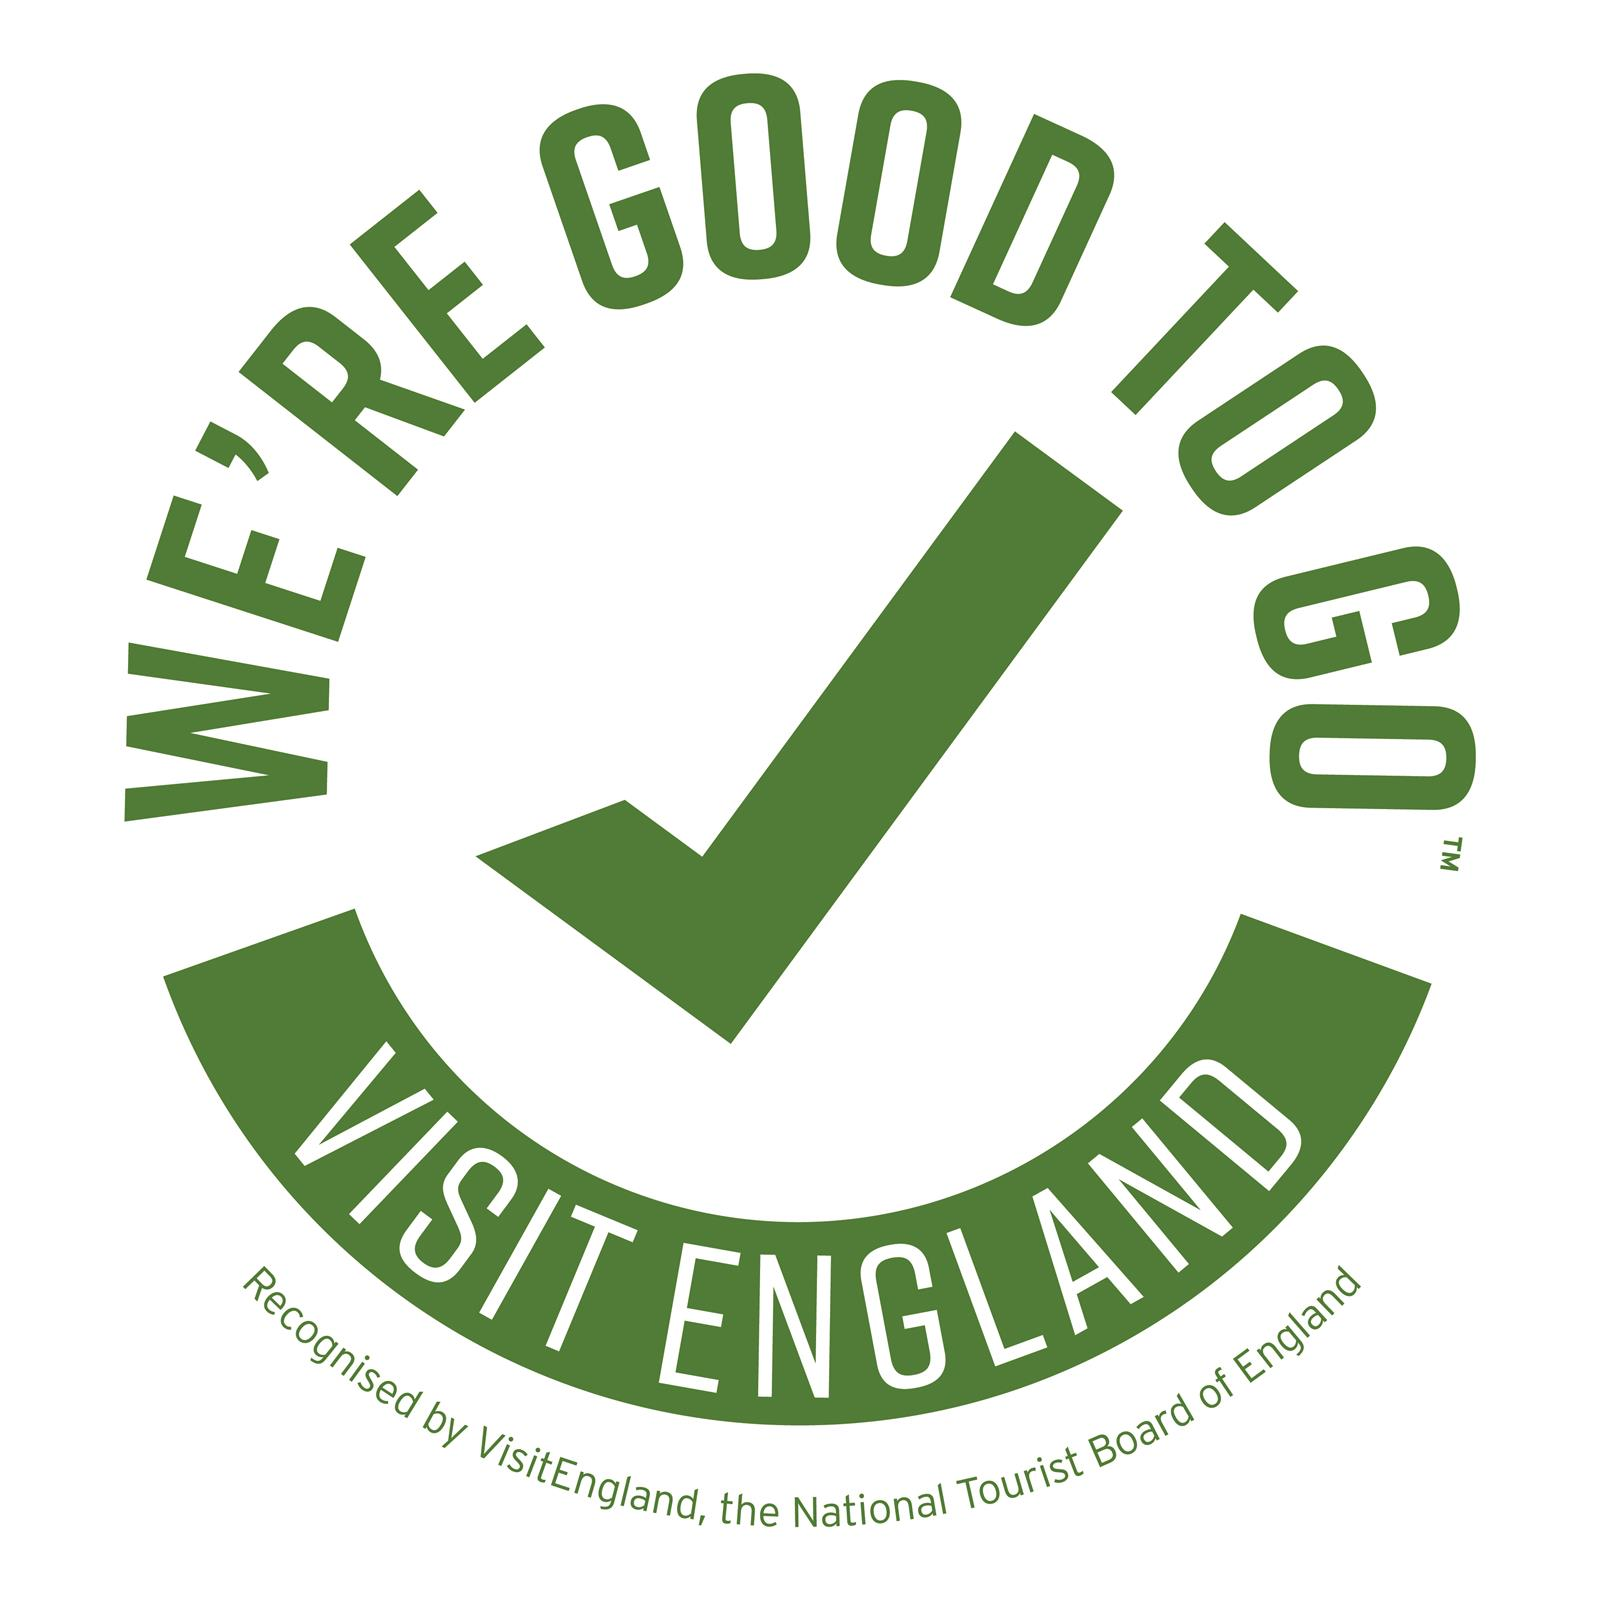 VisitEngland 'We're Good to Go' Accreditation Scheme